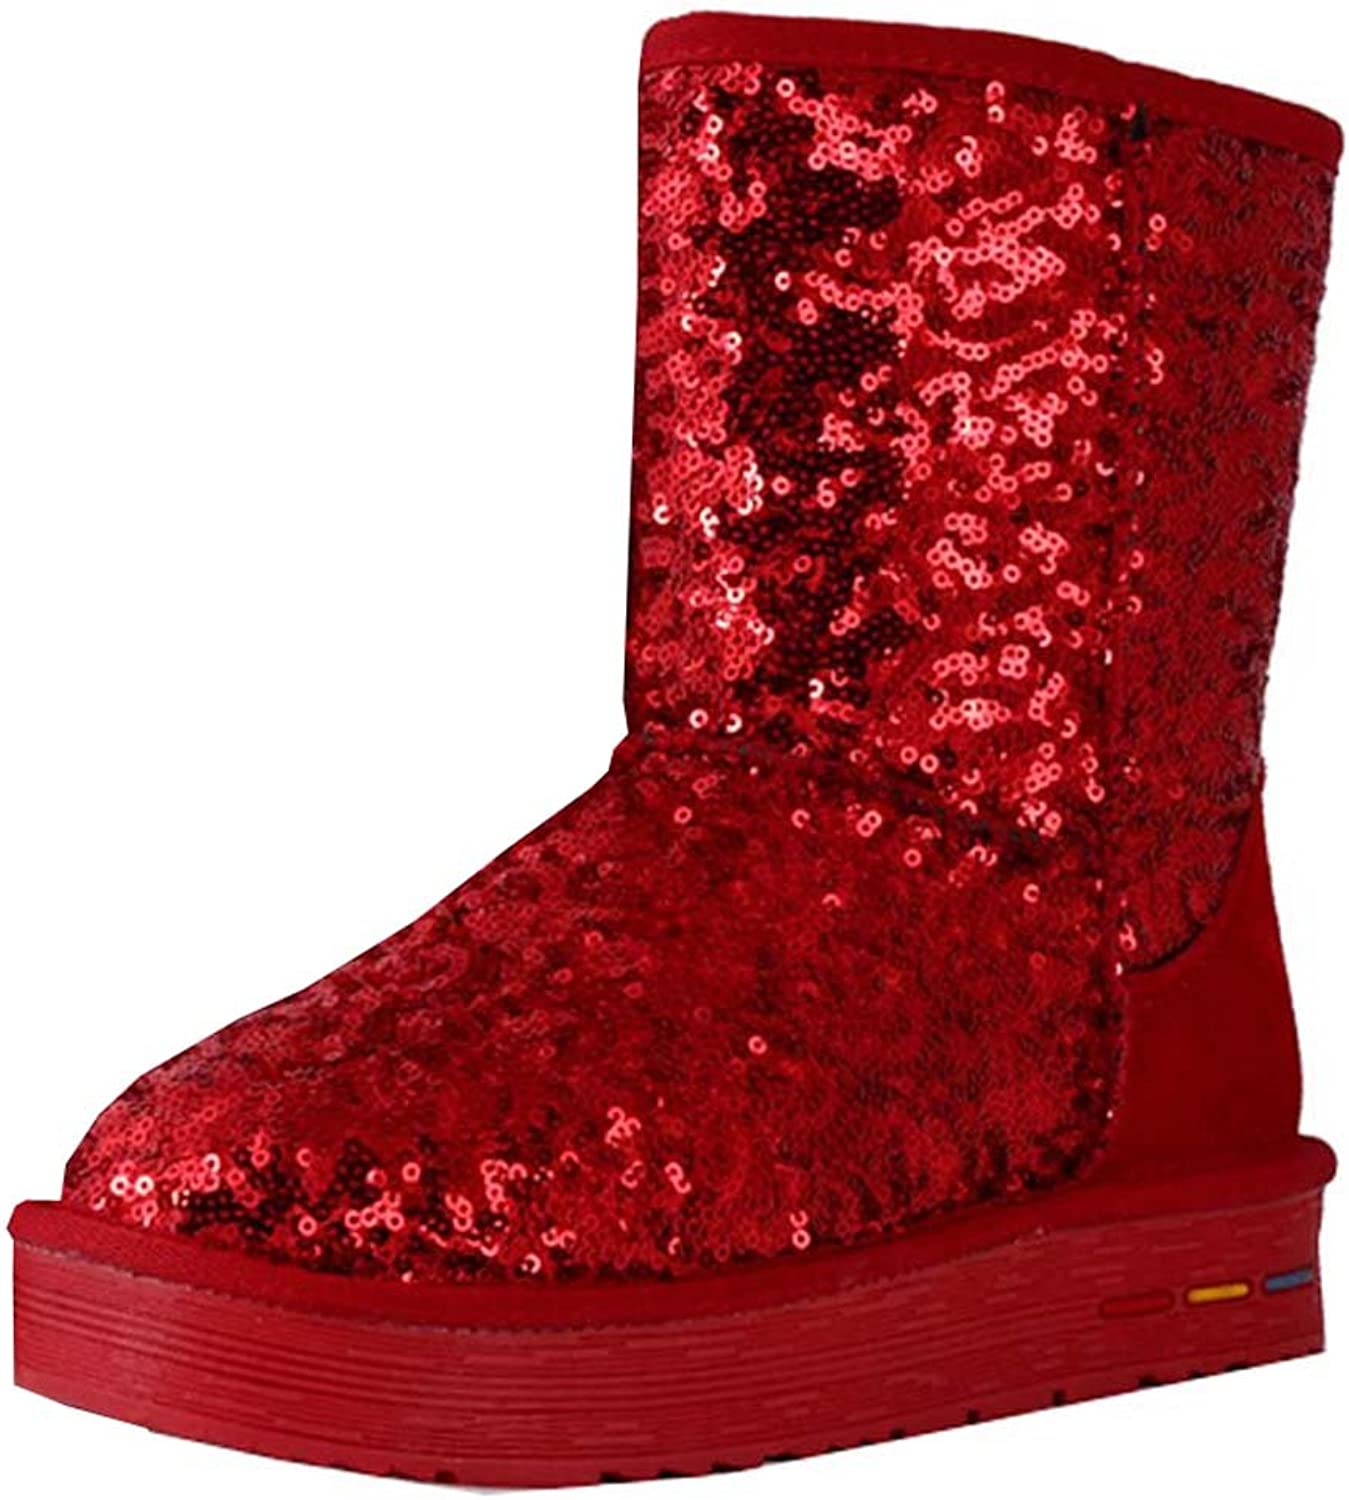 Cotton sequined boots winter boots leather snow boots women snow cotton warm